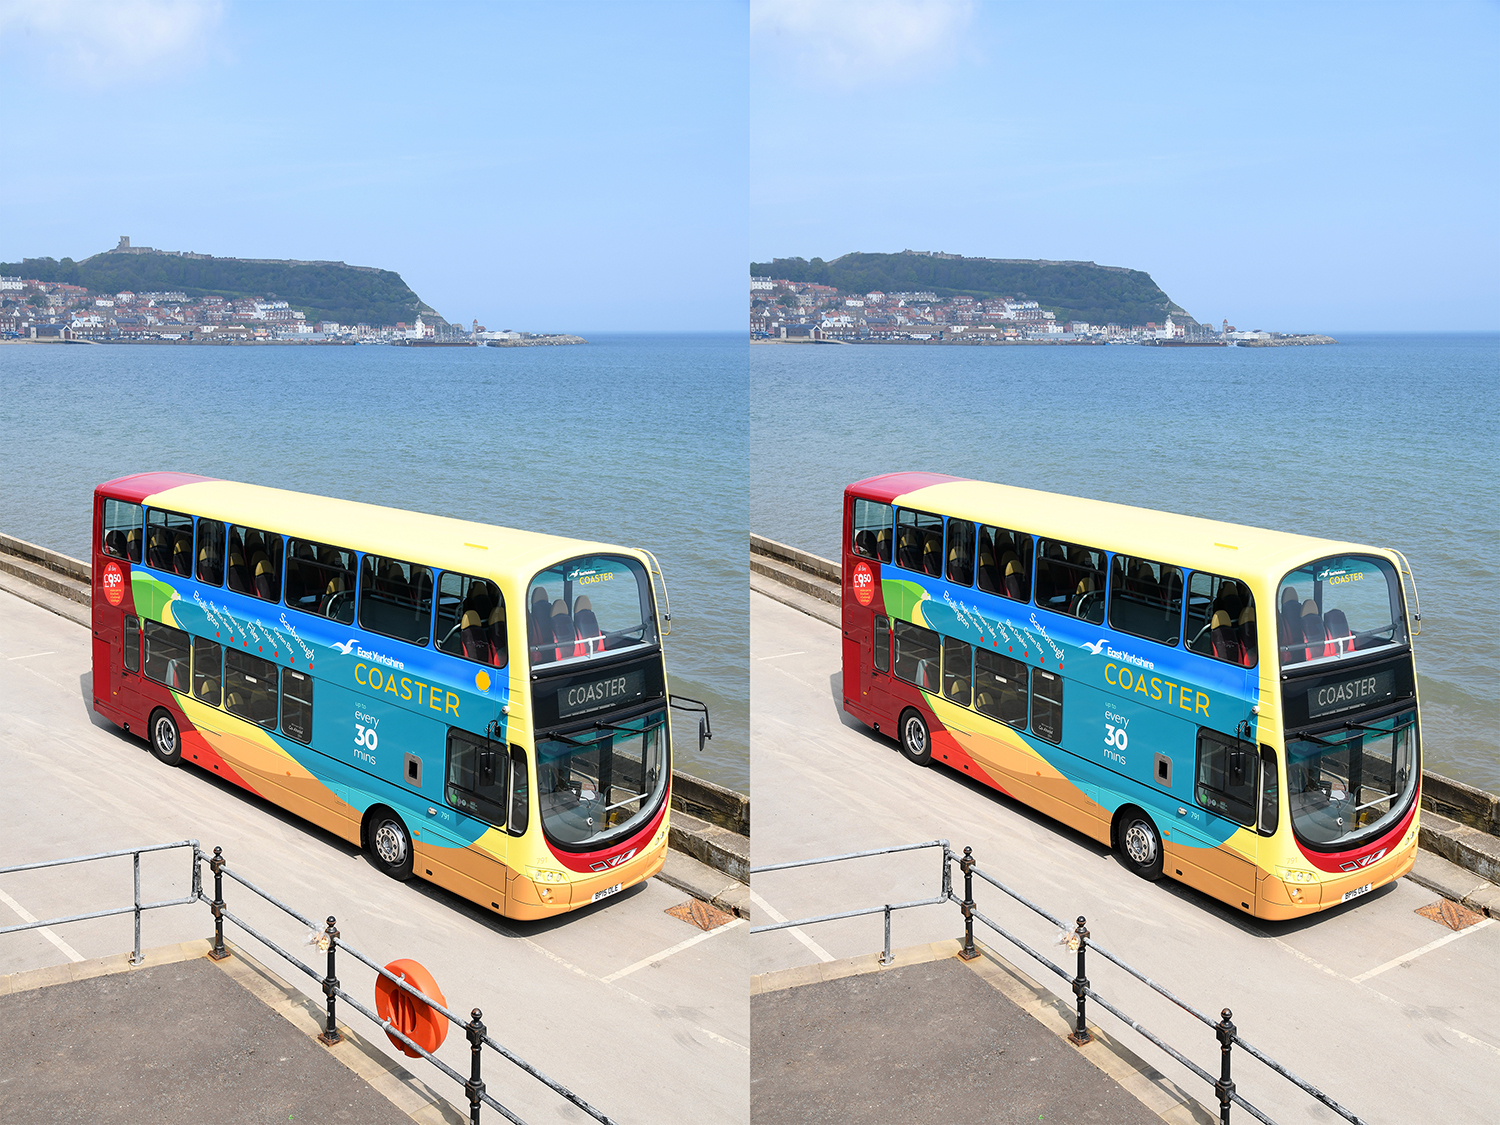 Spot the difference images, with two pictures showing 8 differences for people to spot